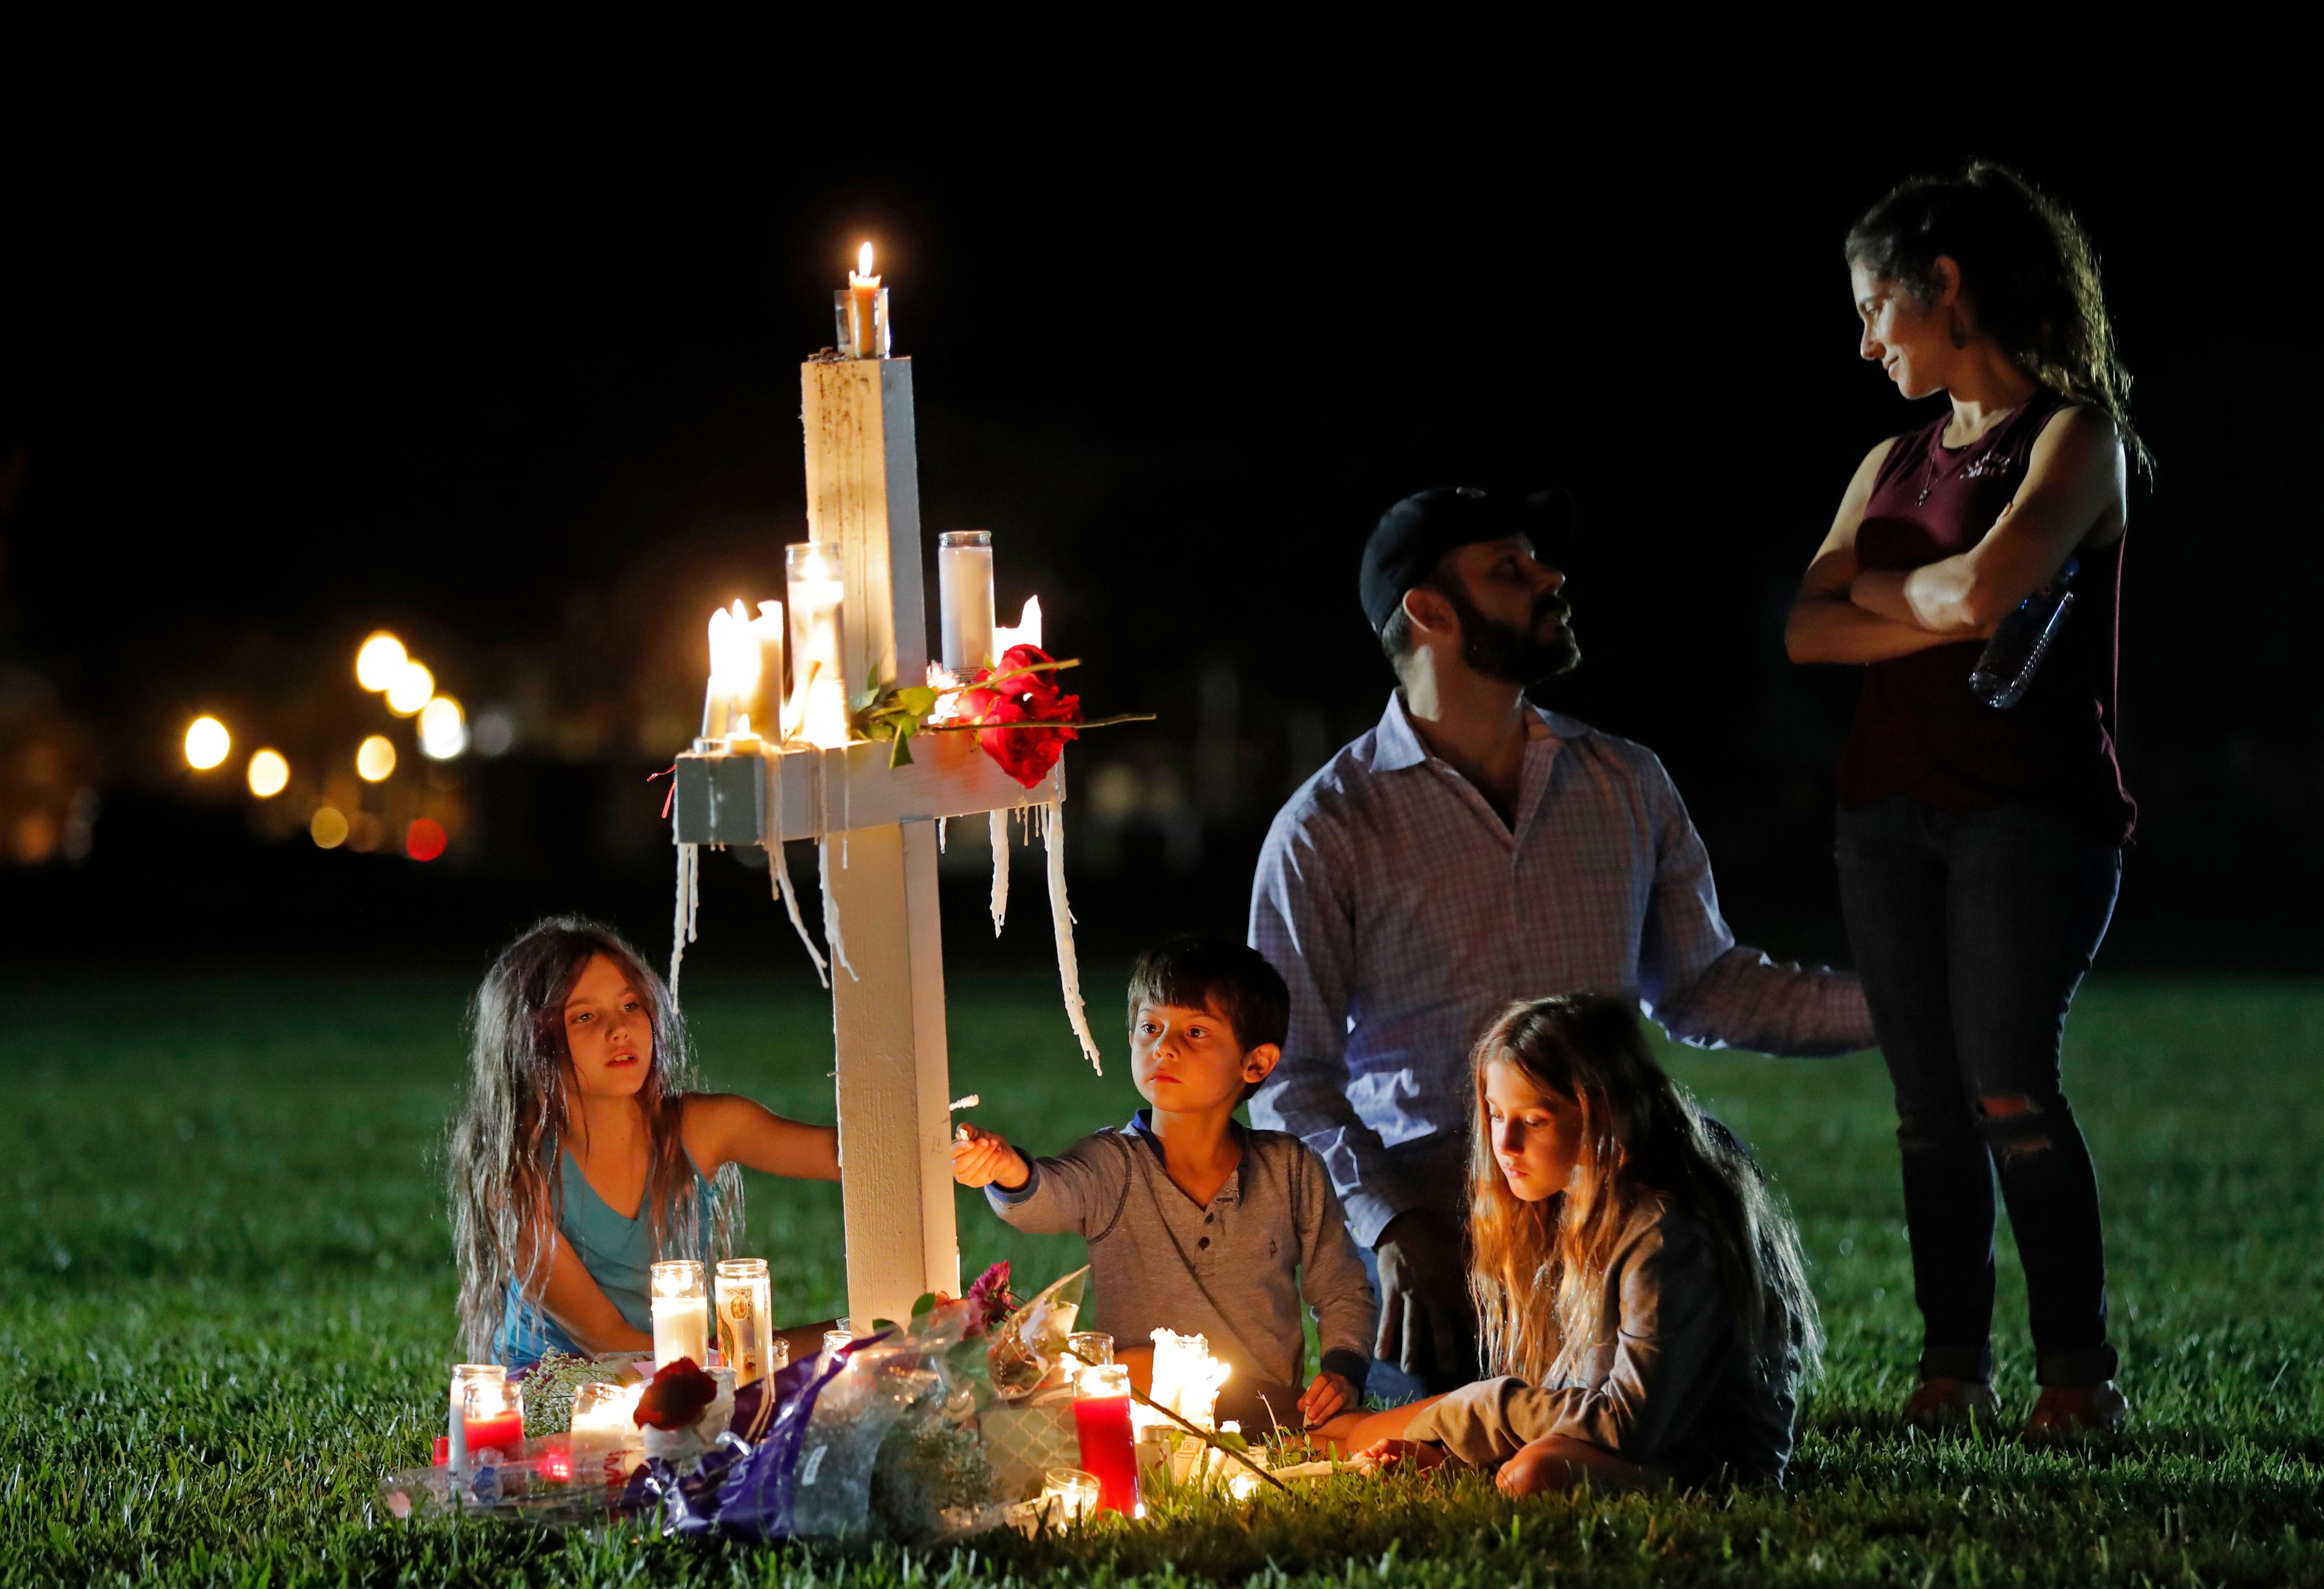 Rich and Rachel Castleberry visit one of seventeen crosses after a candlelight vigil for the victims of the Wednesday shooting at Marjory Stoneman Douglas High School, in Parkland, Fla., Thursday, Feb. 15, 2018. (AP Photo/Gerald Herbert)<p></p>